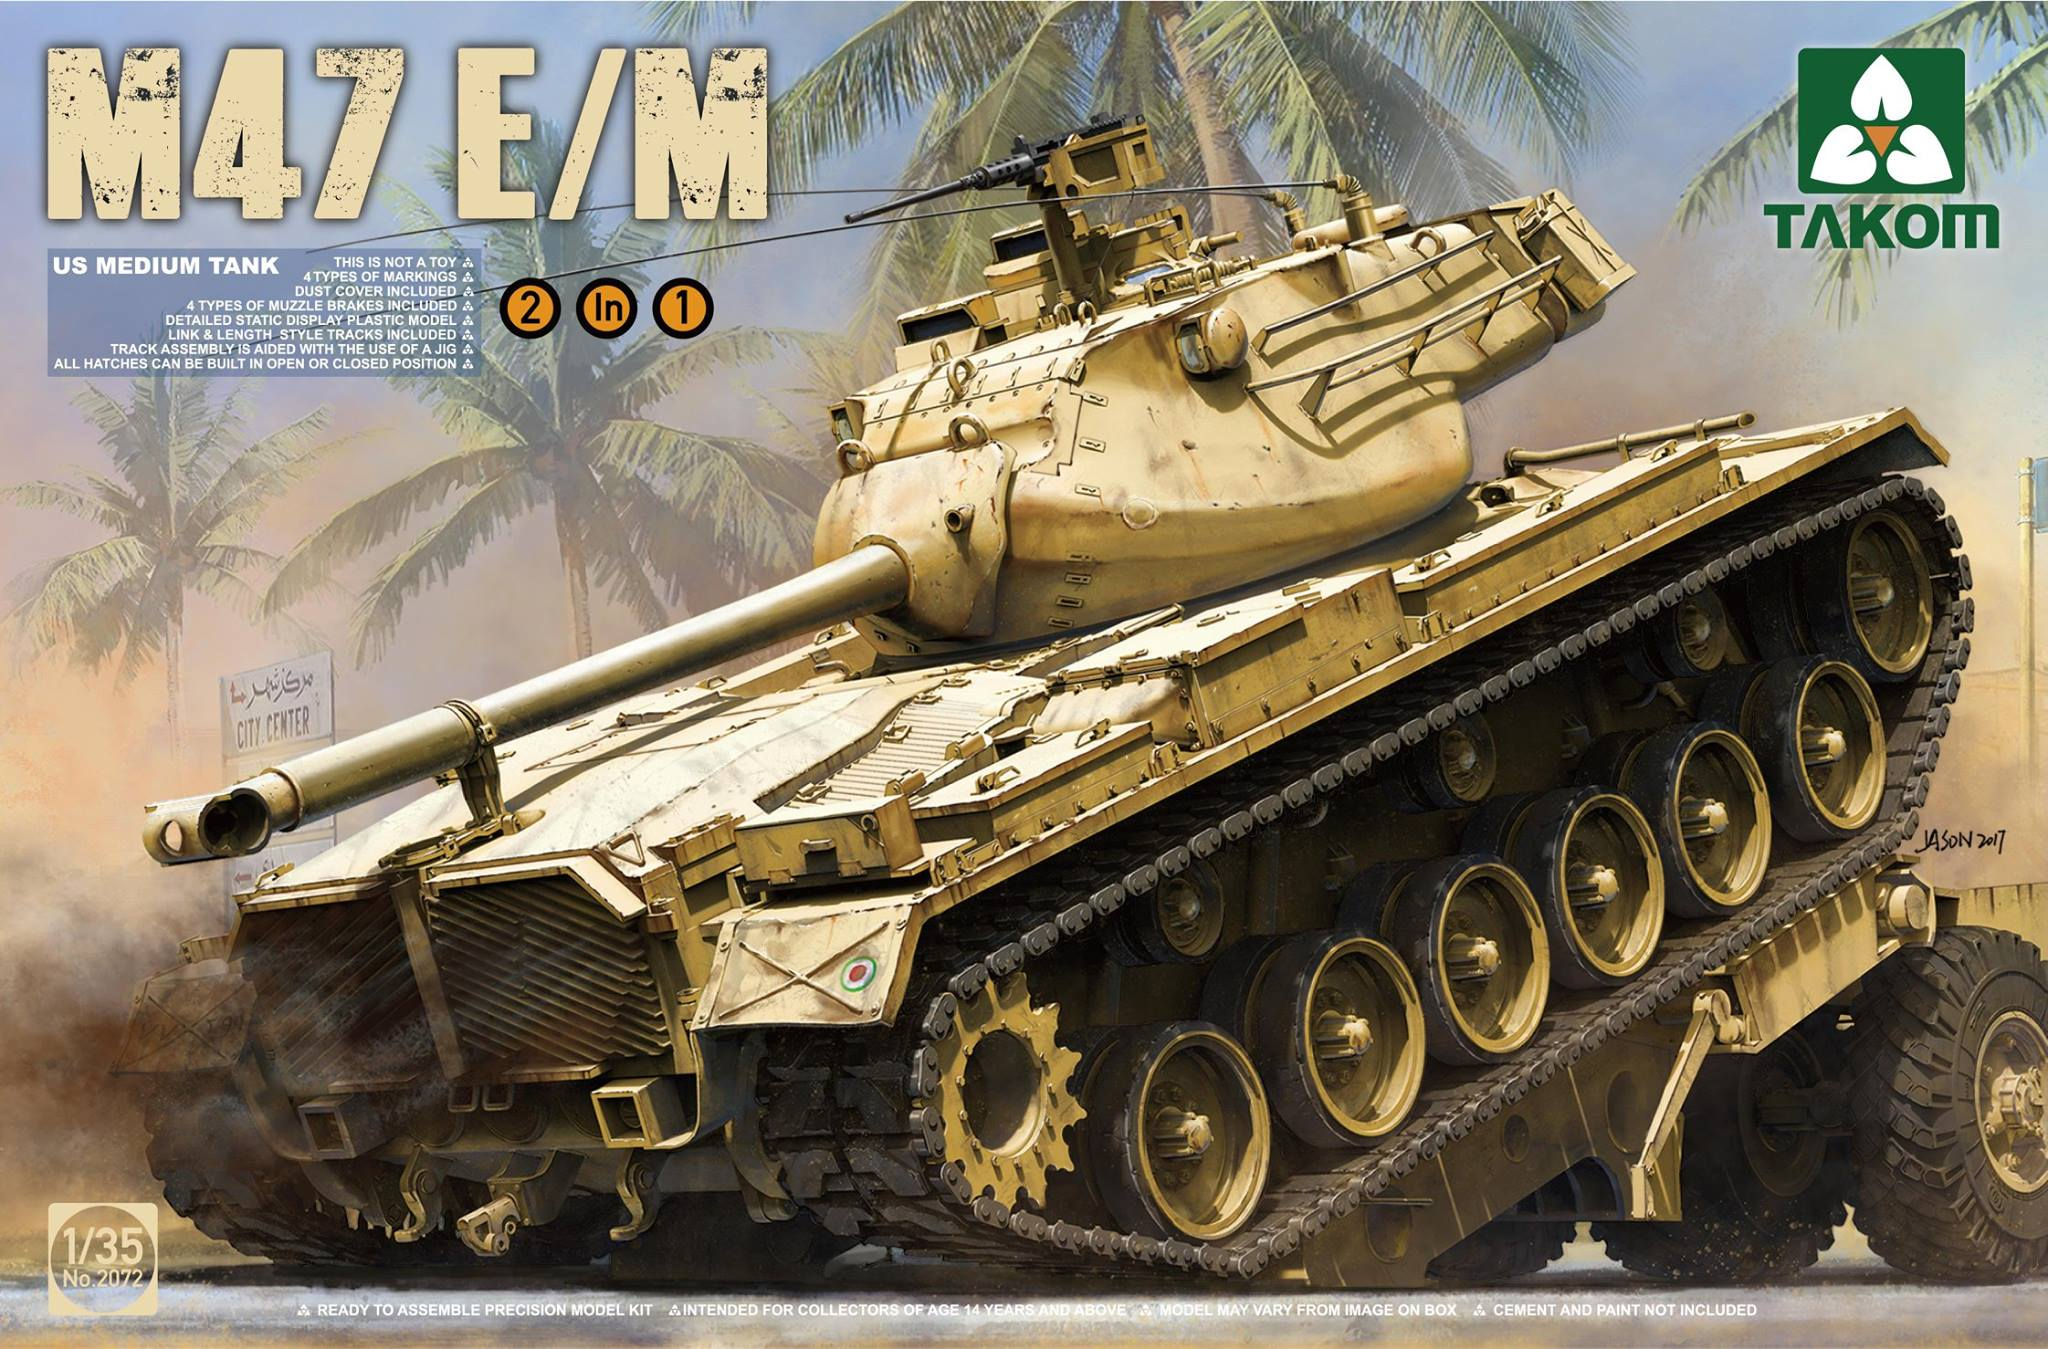 US Medium Tank M47 E/M (2 in 1)